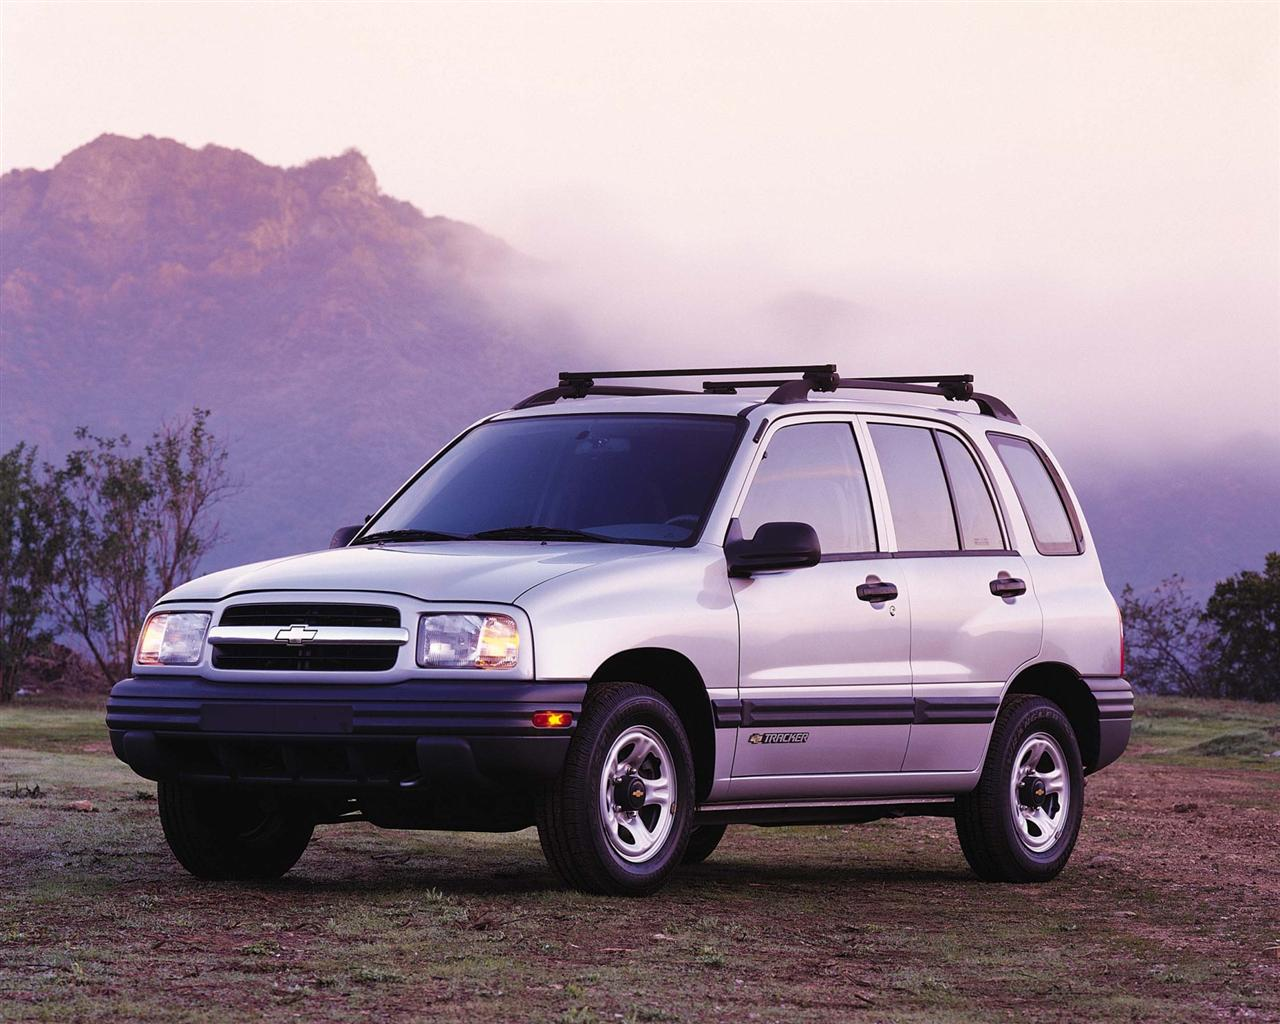 2000 Chevrolet Tracker Image Https Www Conceptcarz Com Images Chevrolet 2000 Chevrolet